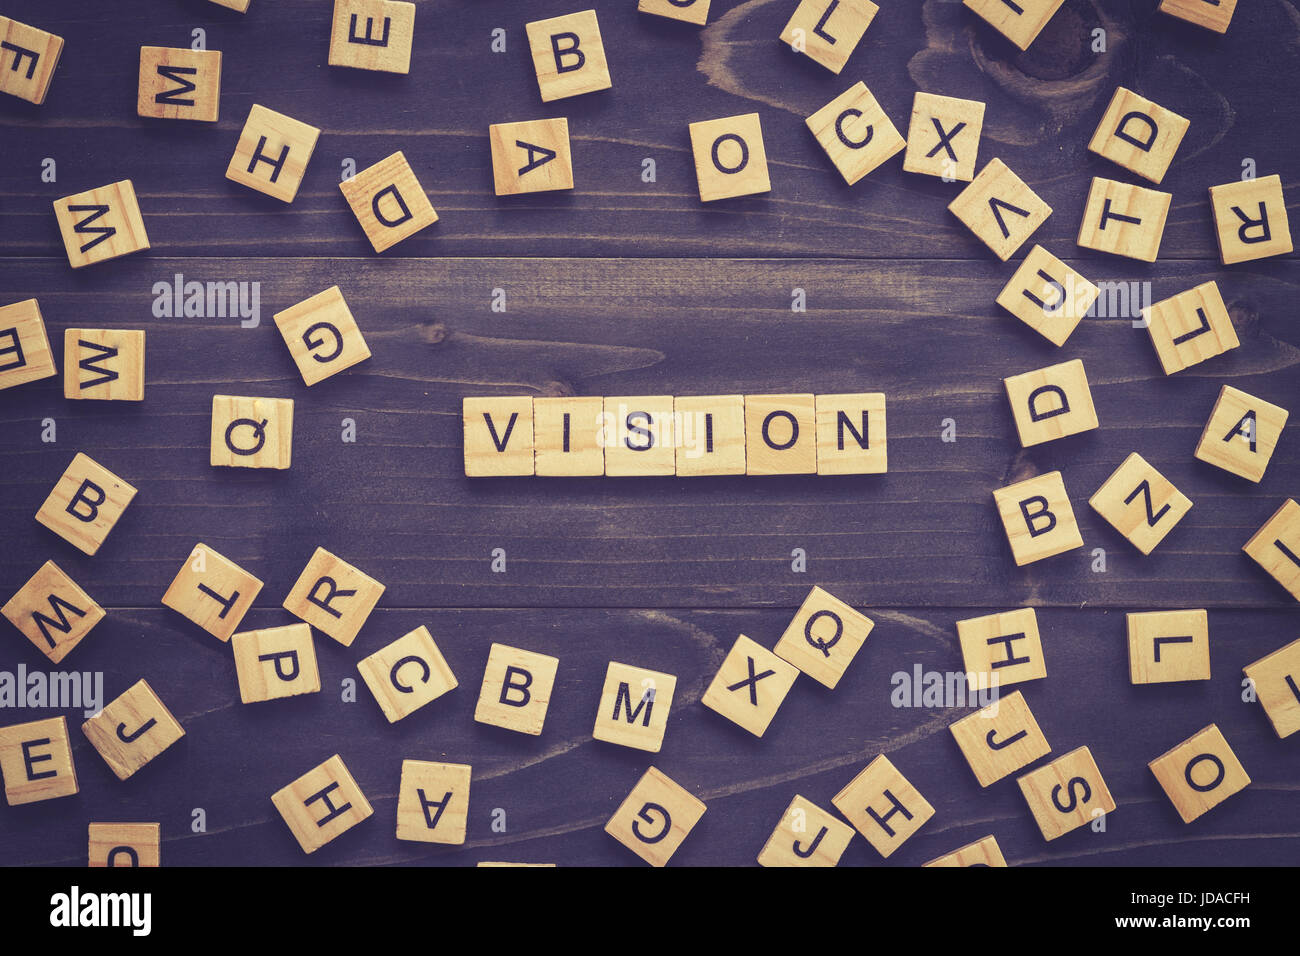 Vision word on wood table for business concept. - Stock Image